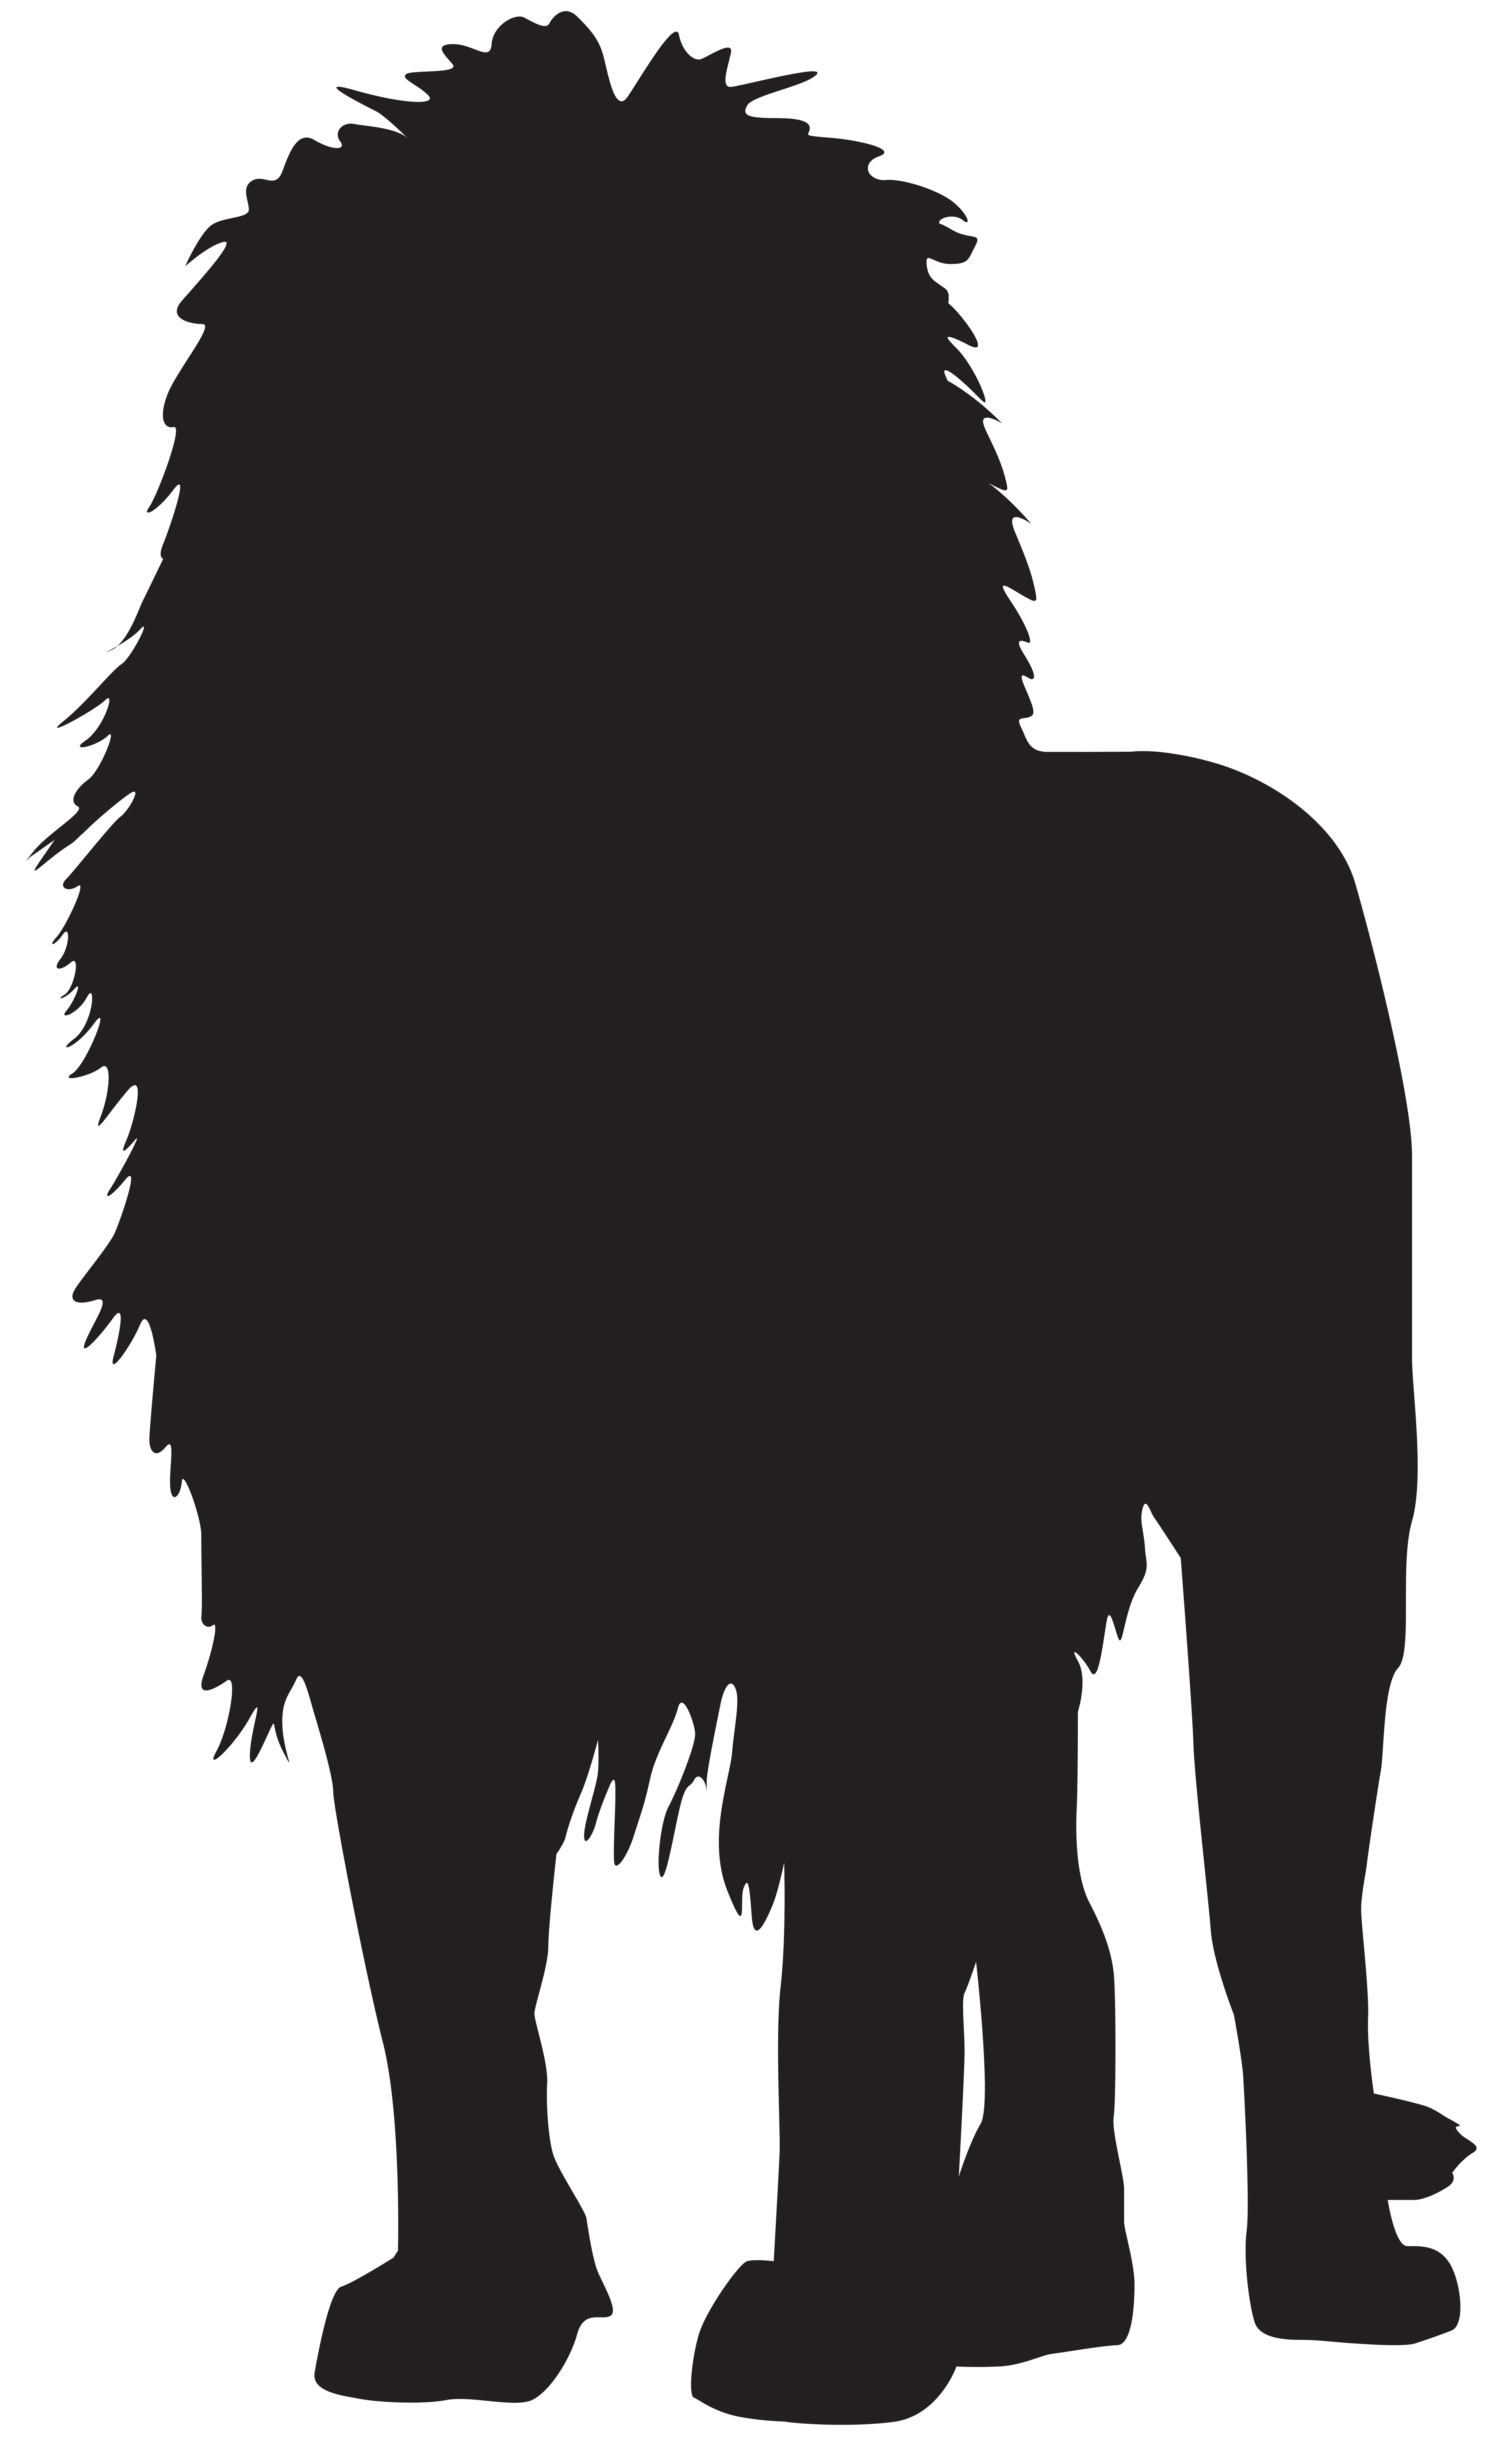 Narwhal clipart classy. Lion silhouette png transparent